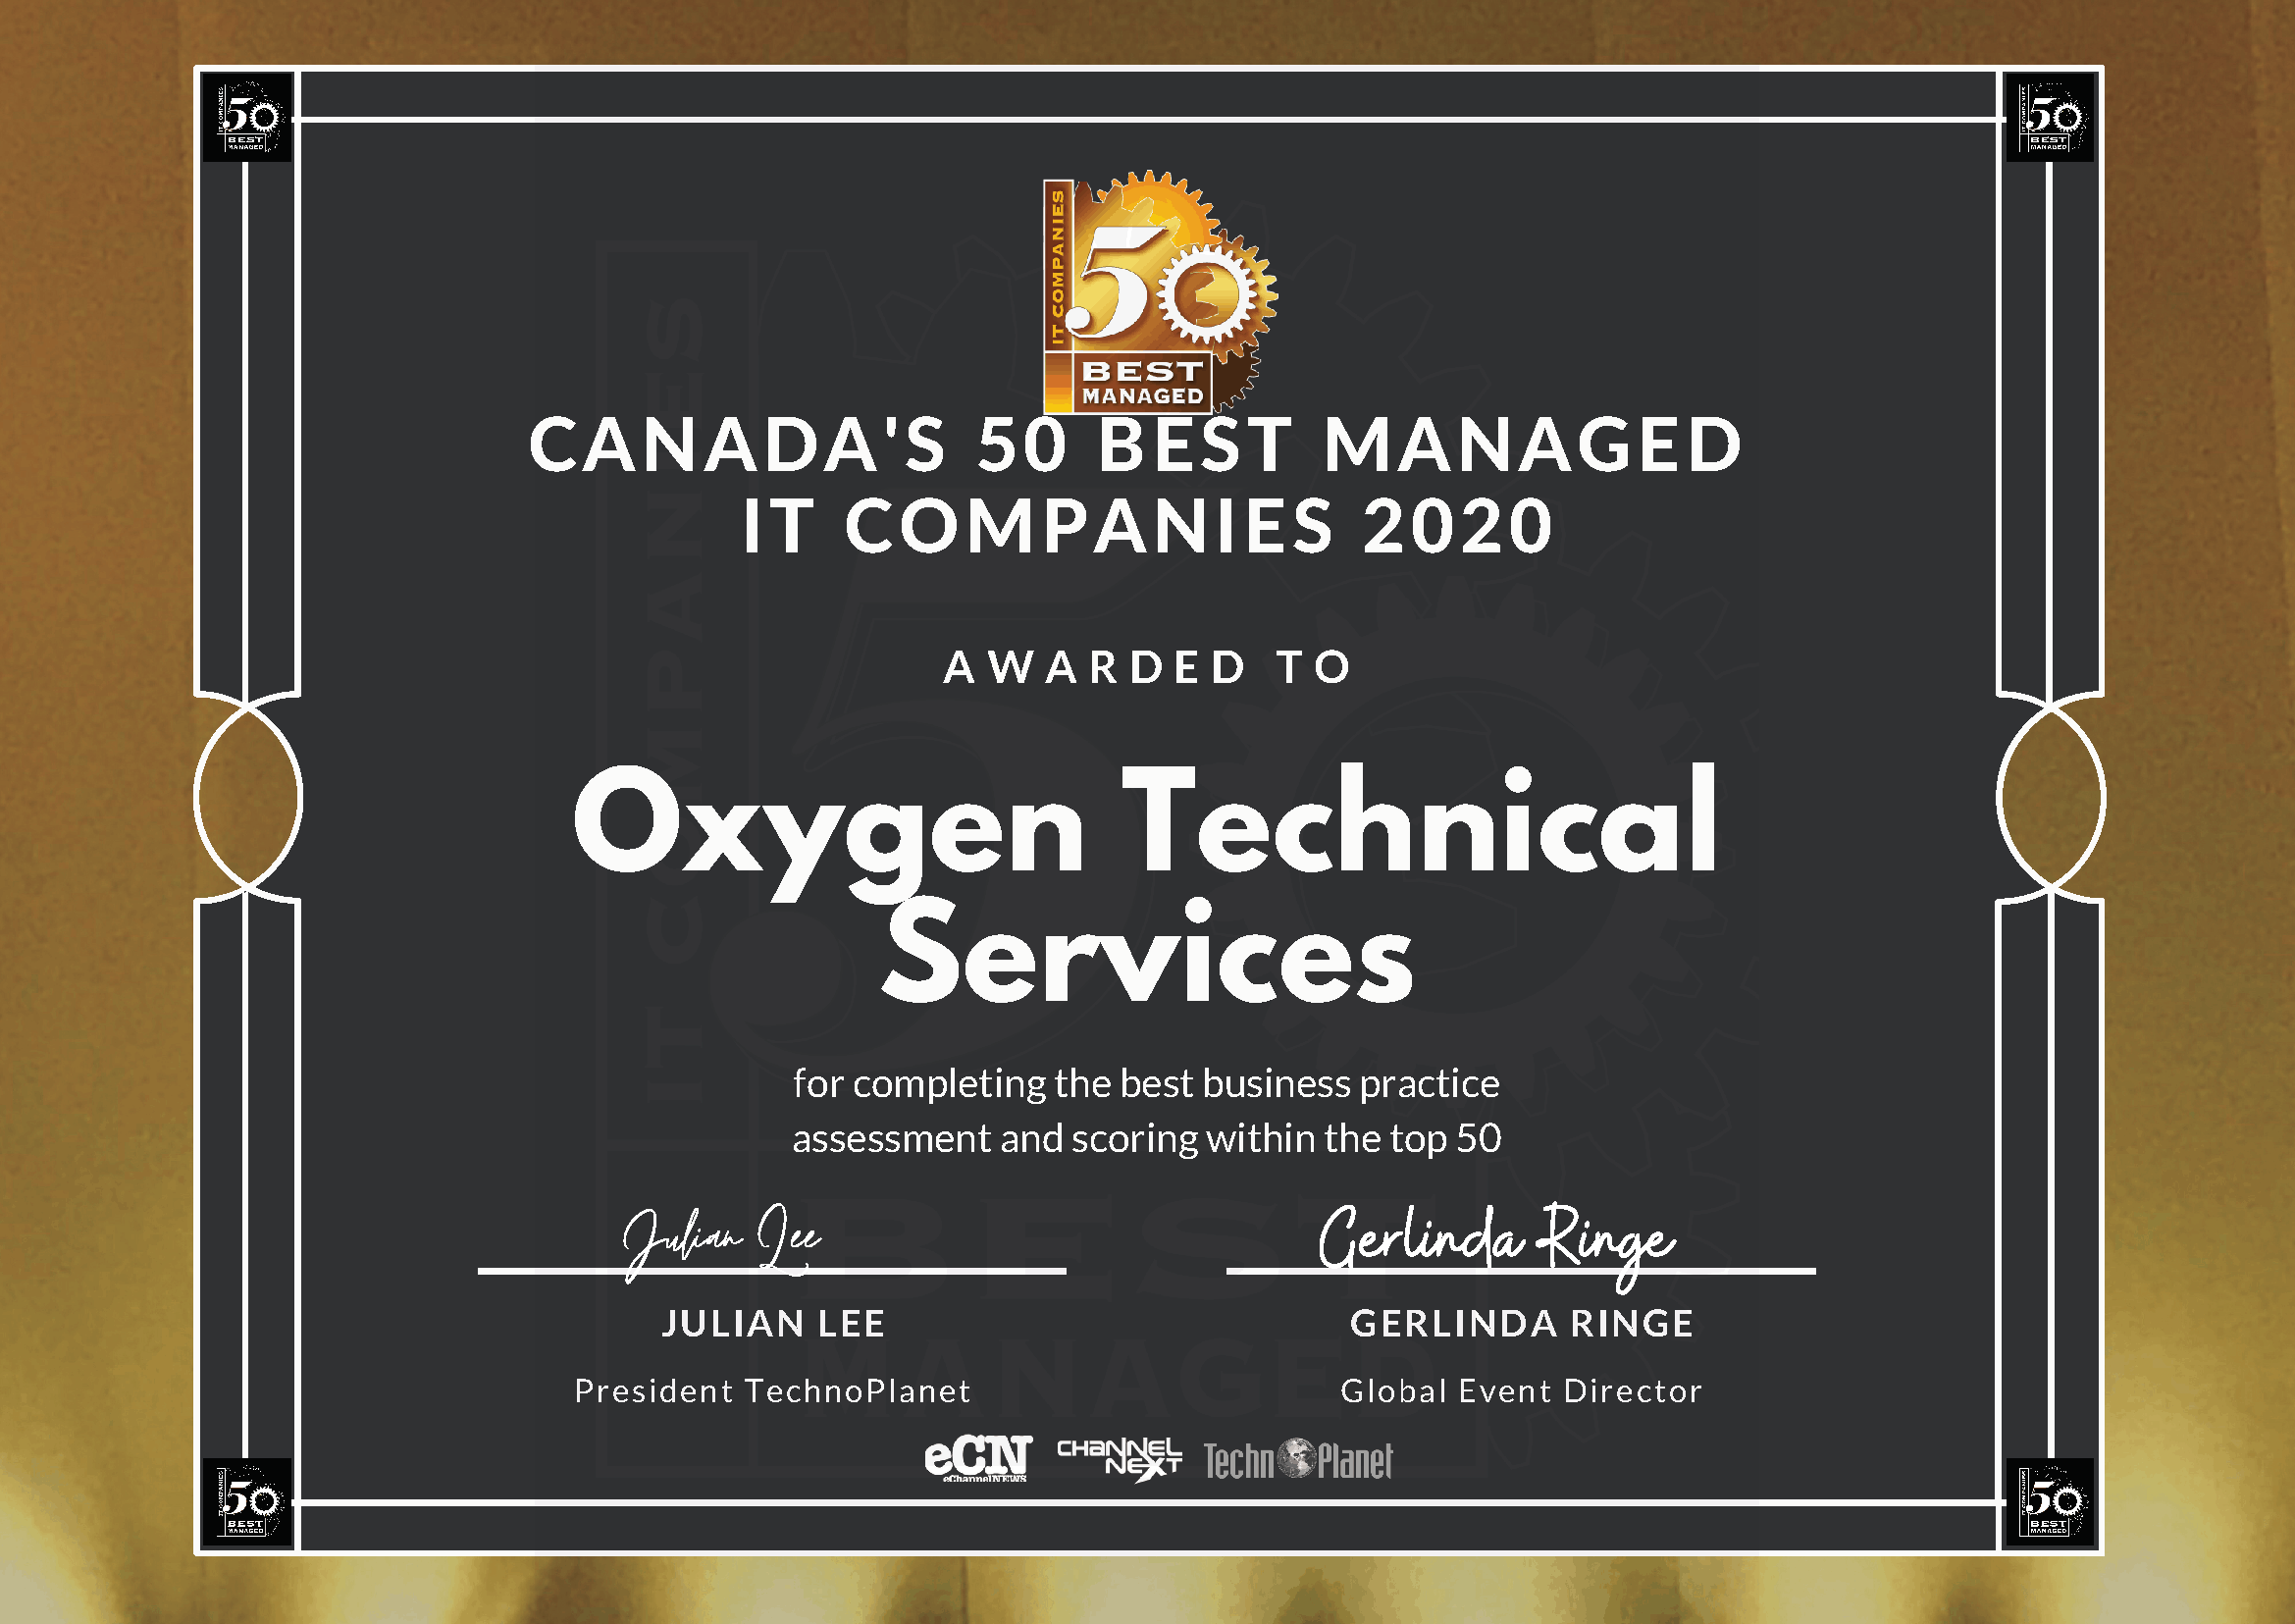 Oxygen Technologies - One of Canada's 50 Best Managed IT Companies